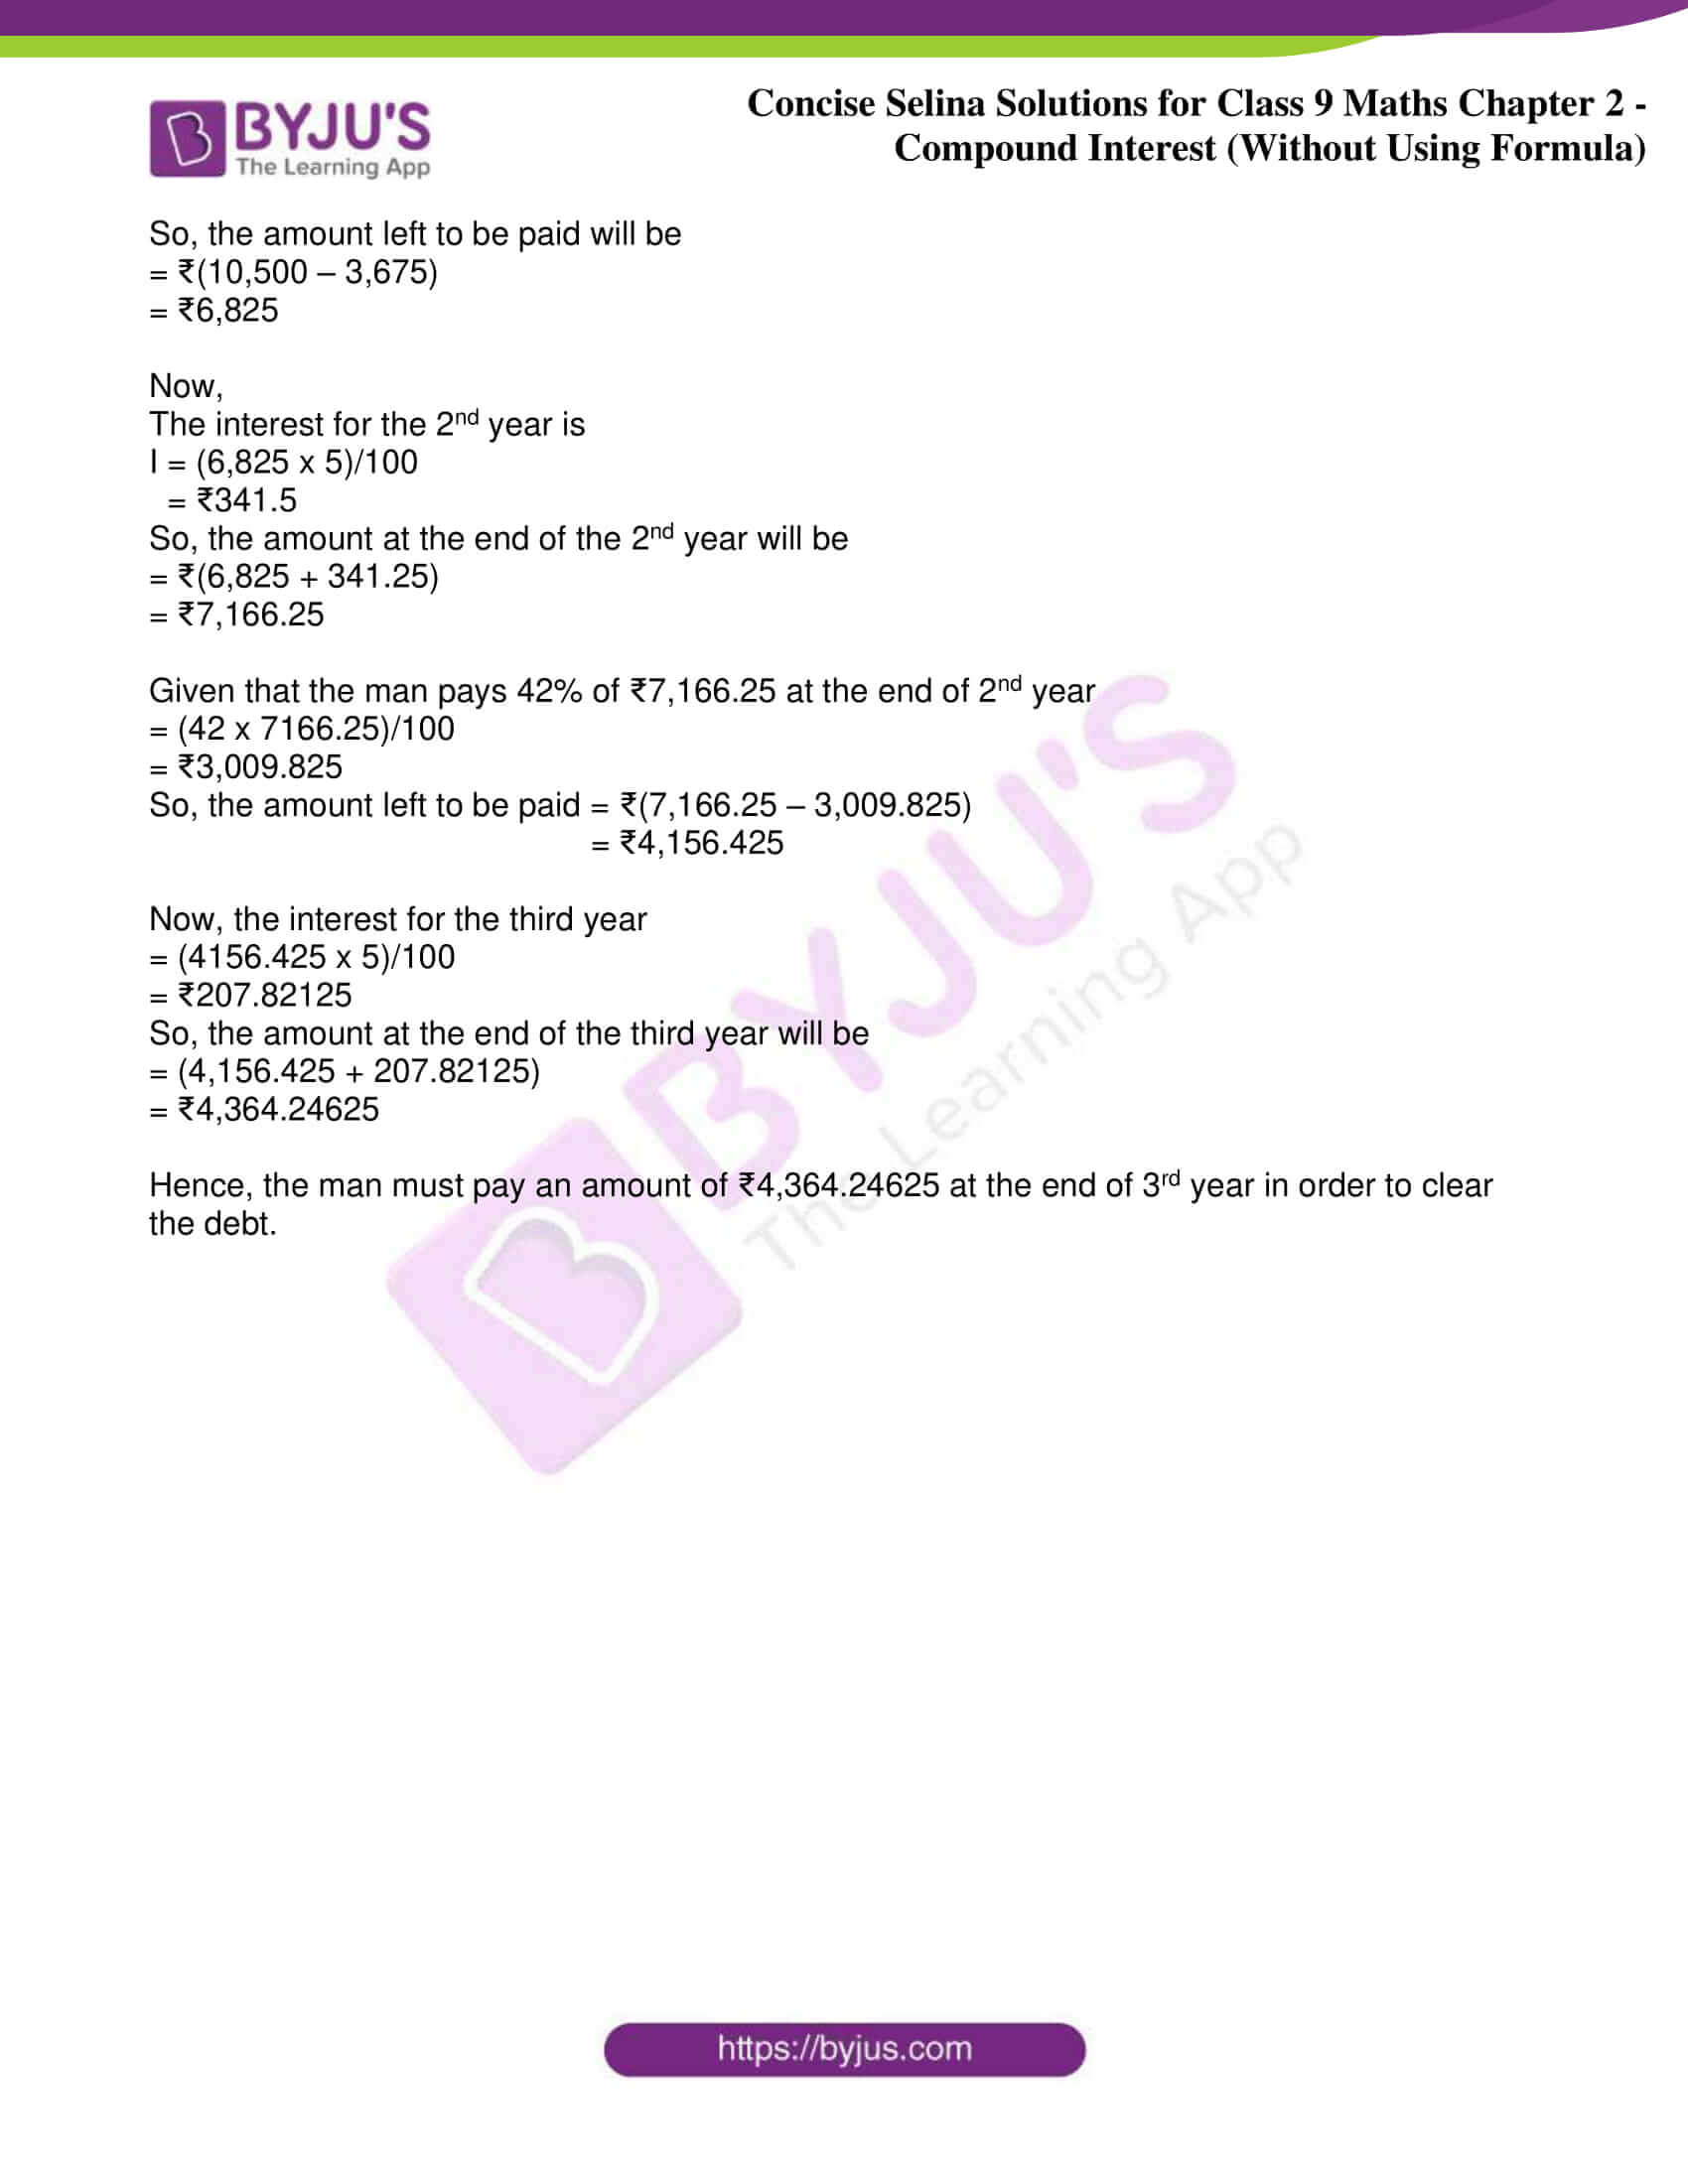 icse class 9 maths may10 selina solutions chapter 2 compound interest without using formula 14